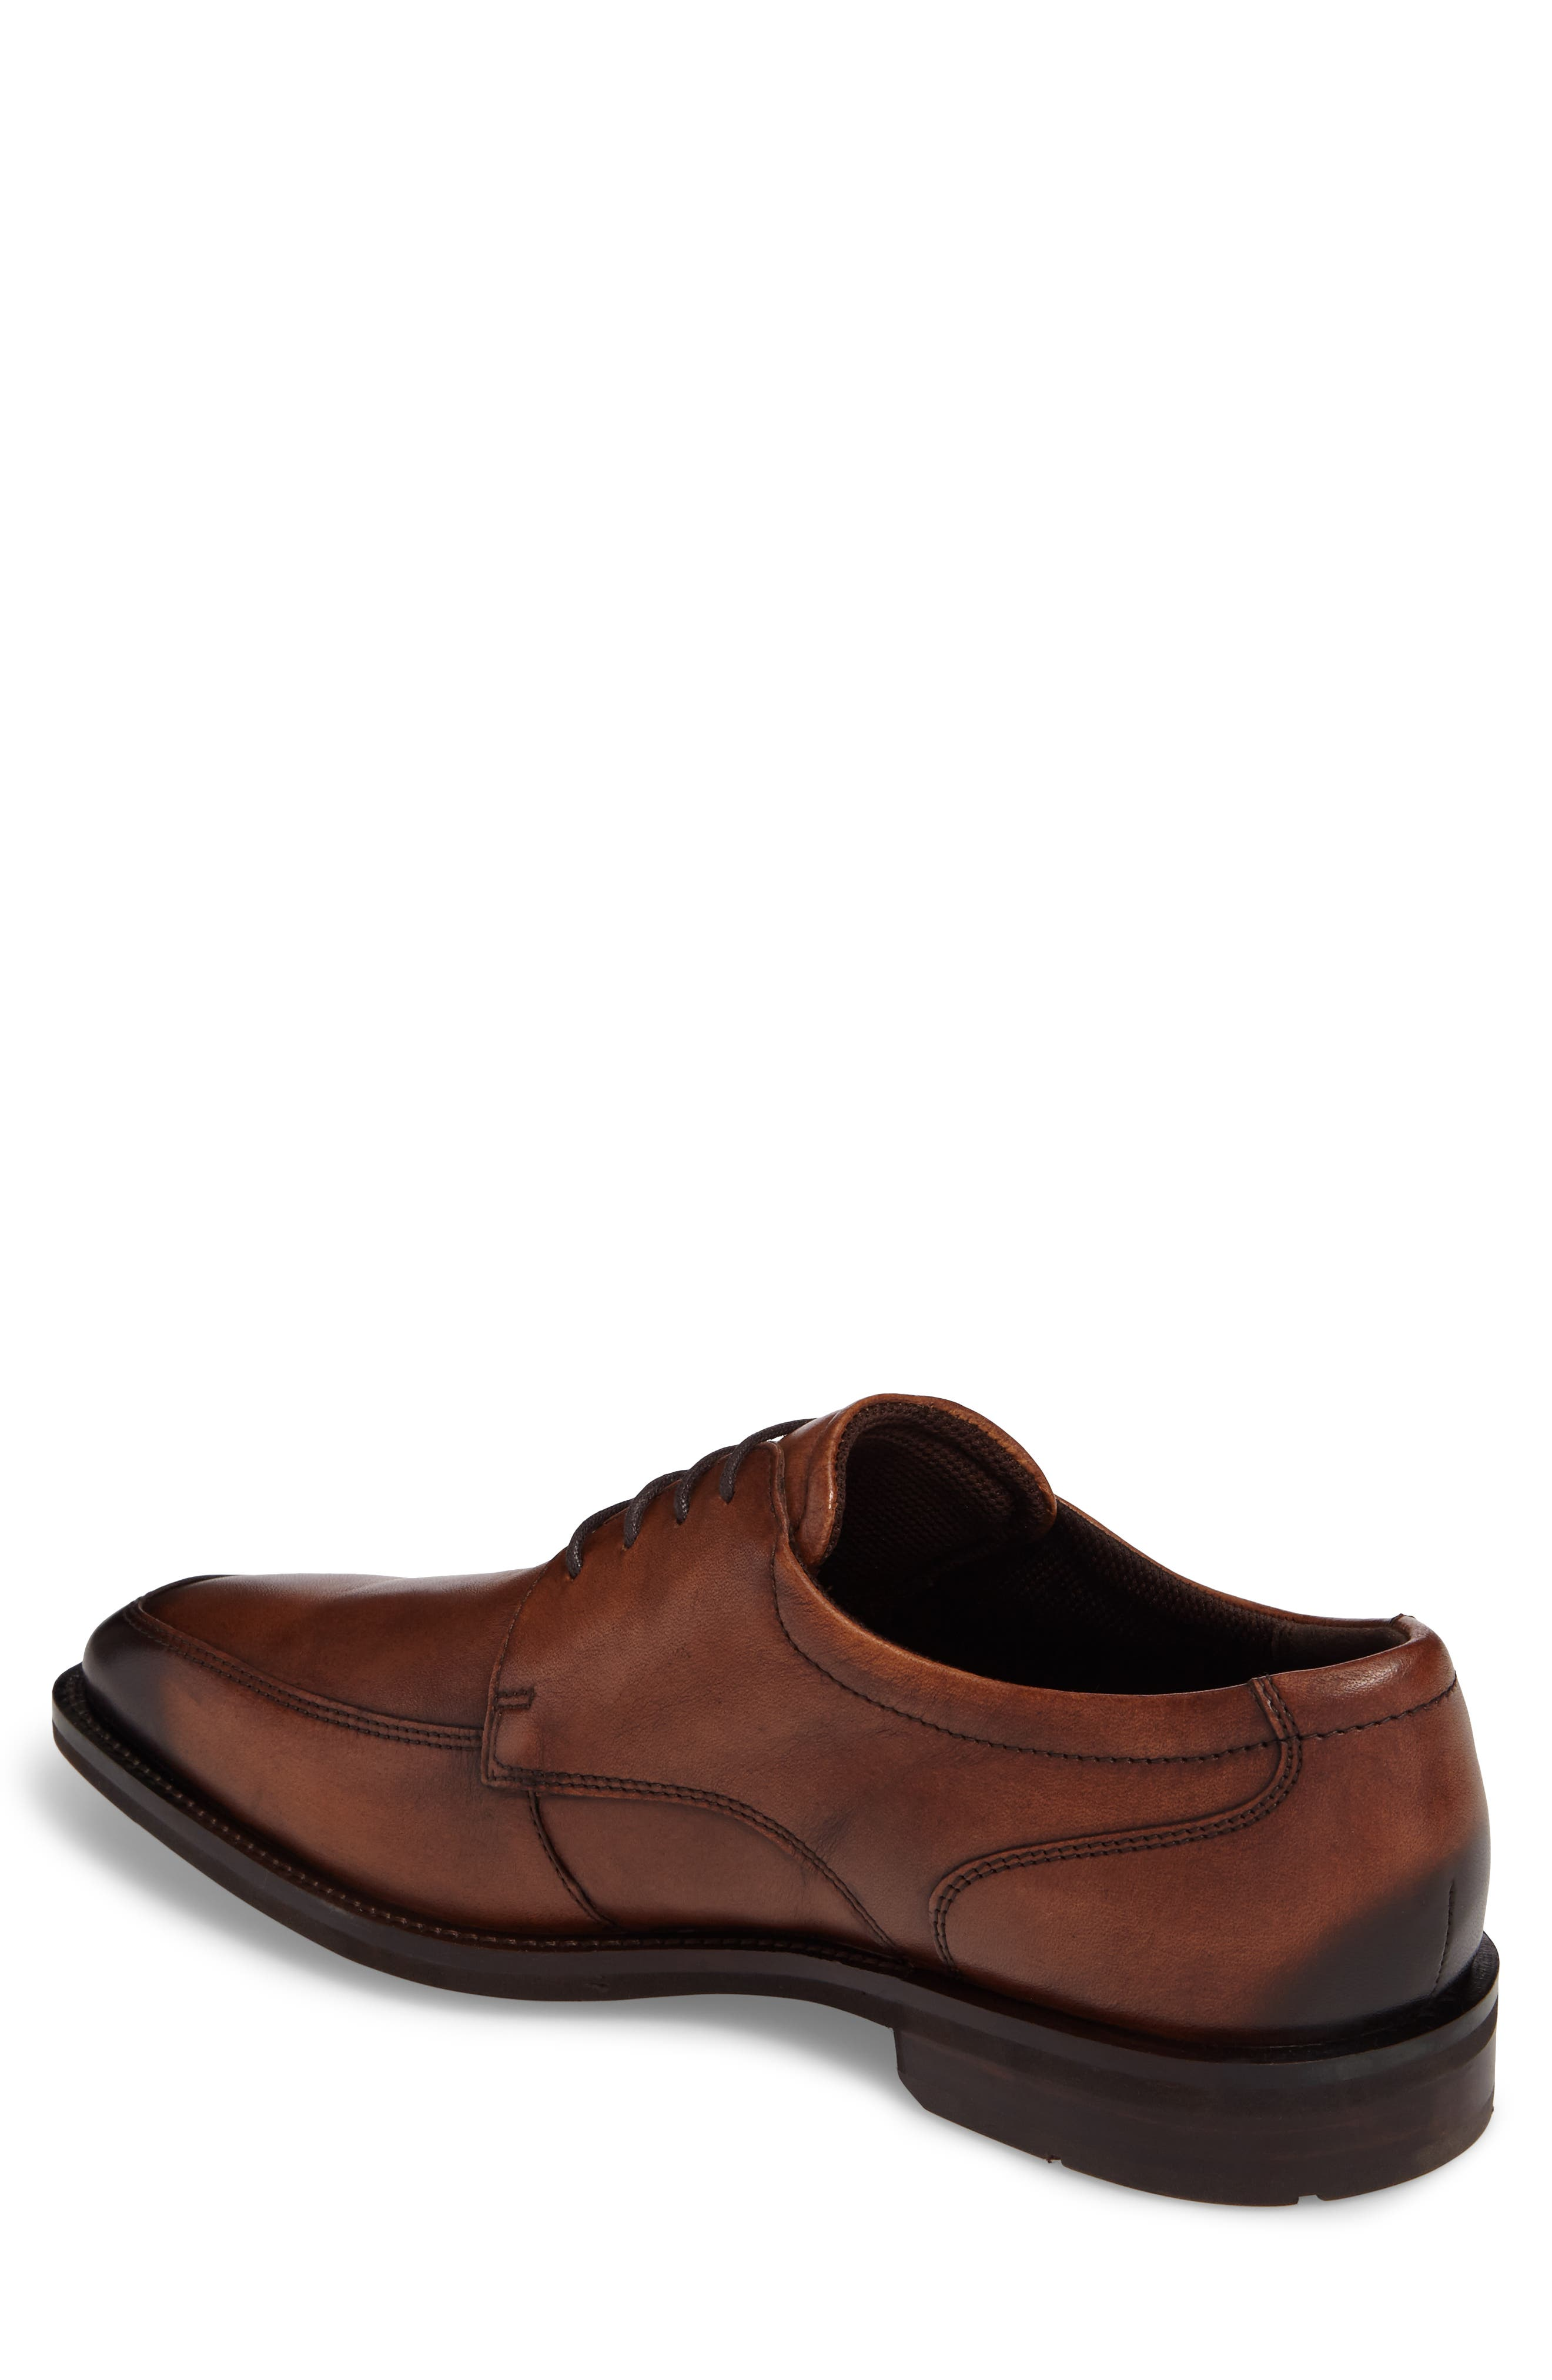 Faro Apron Toe Derby,                             Alternate thumbnail 2, color,                             Amber Leather